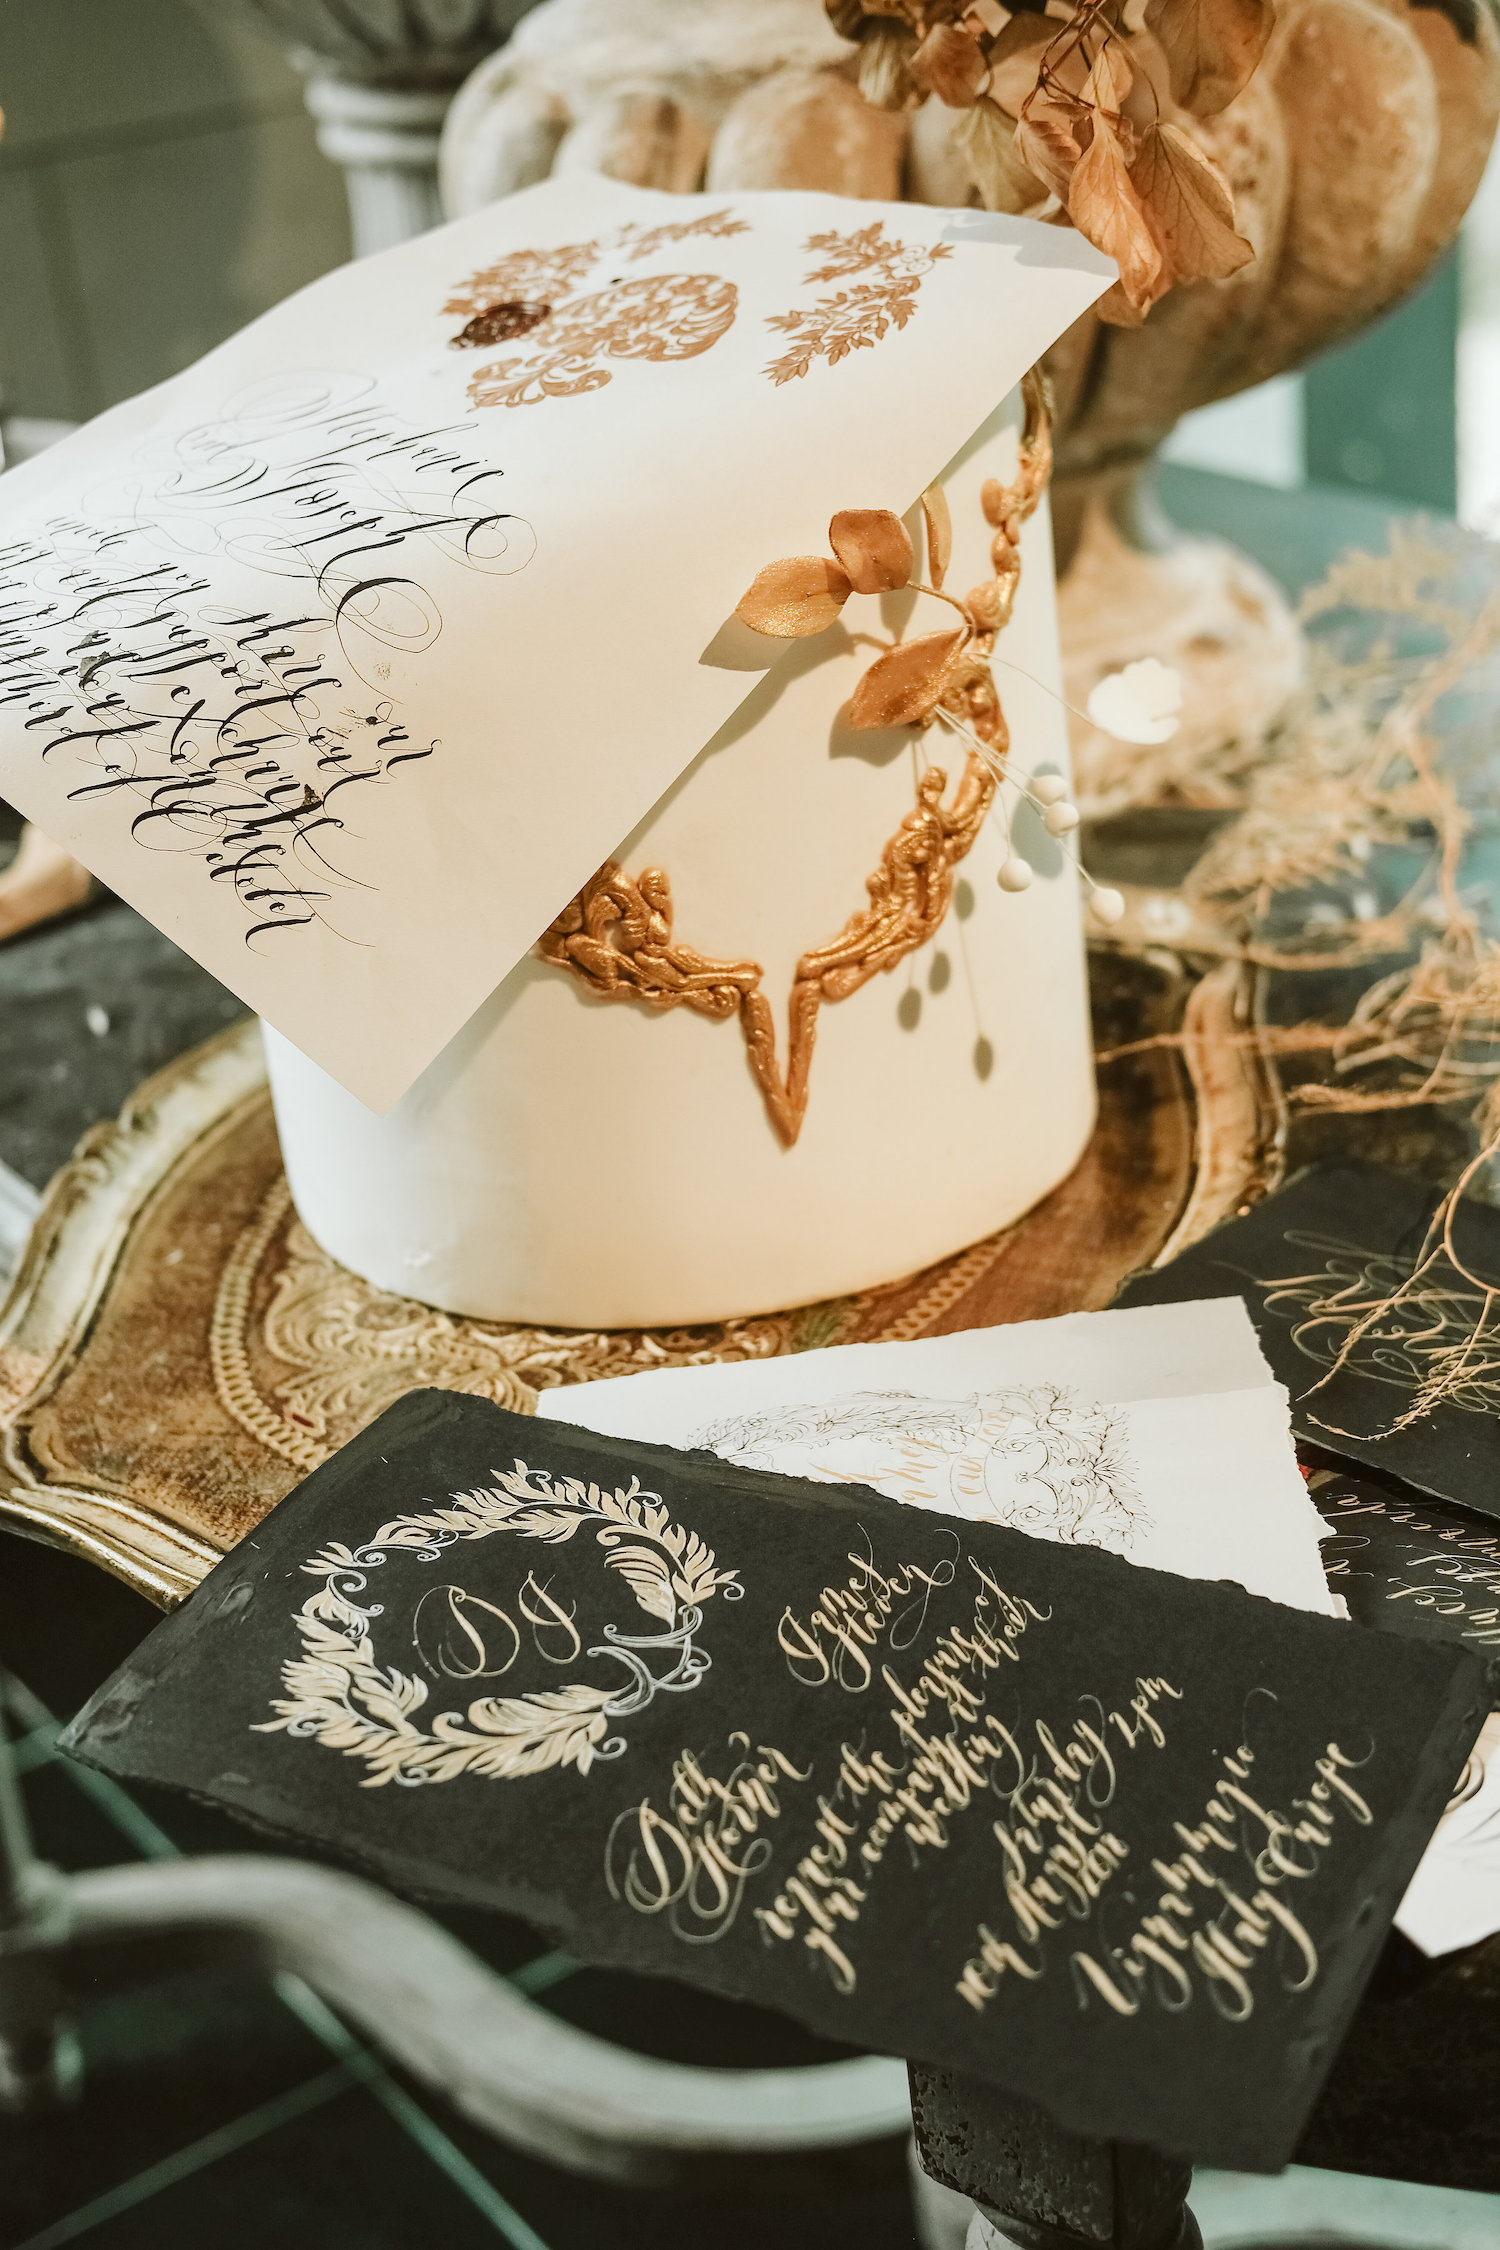 Moody French style invitation with black, gold and hand painted details